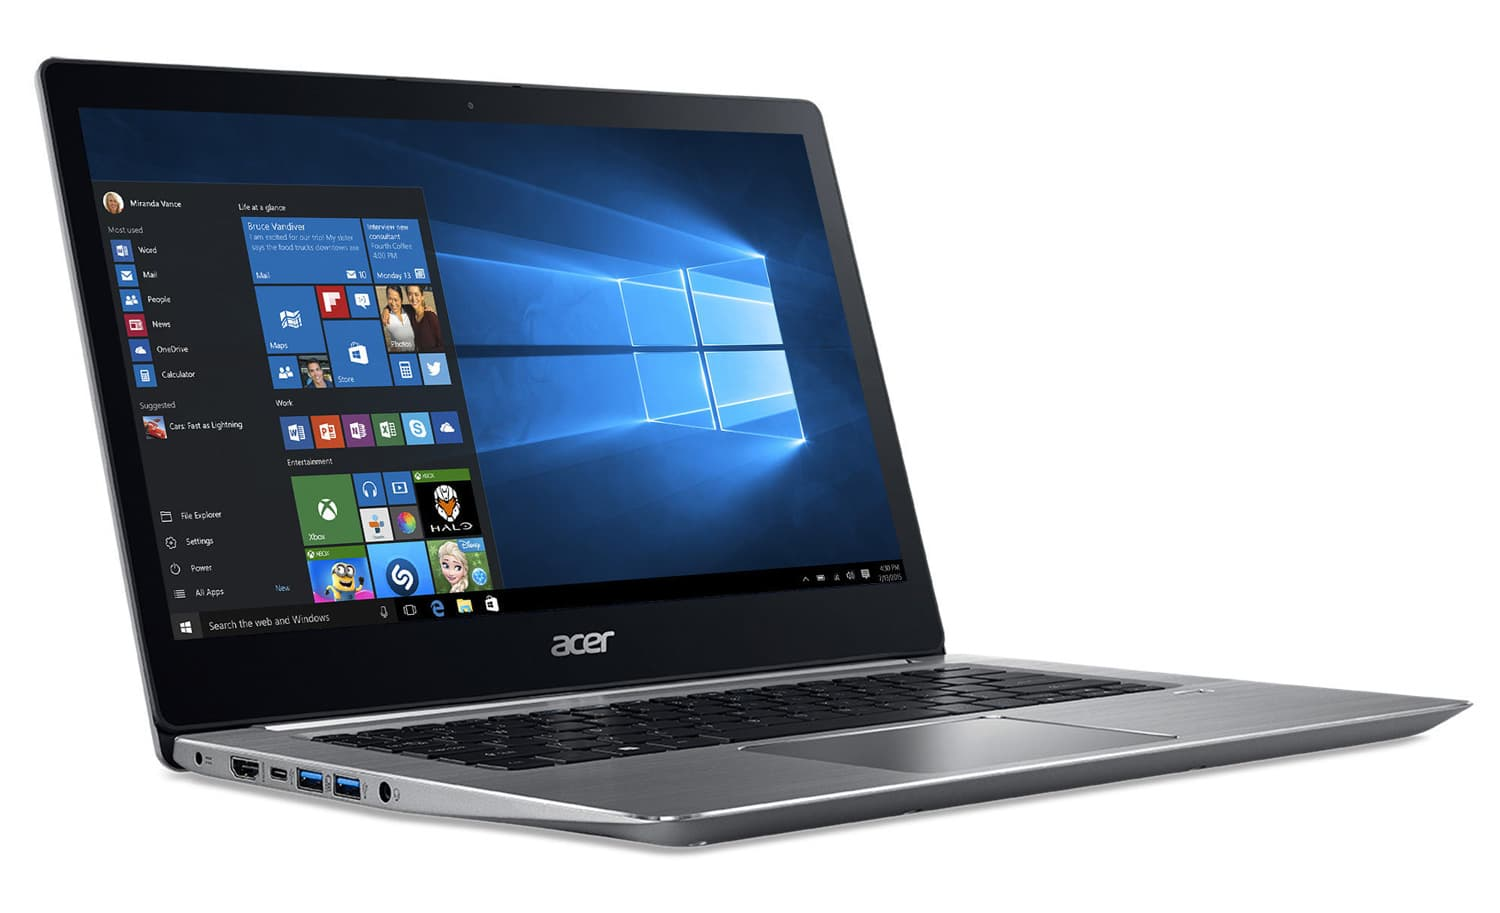 Acer Swift 3 SF314-52-35N6 à 599€, Ultrabook 14 pouces Full IPS Kaby Lake SSD